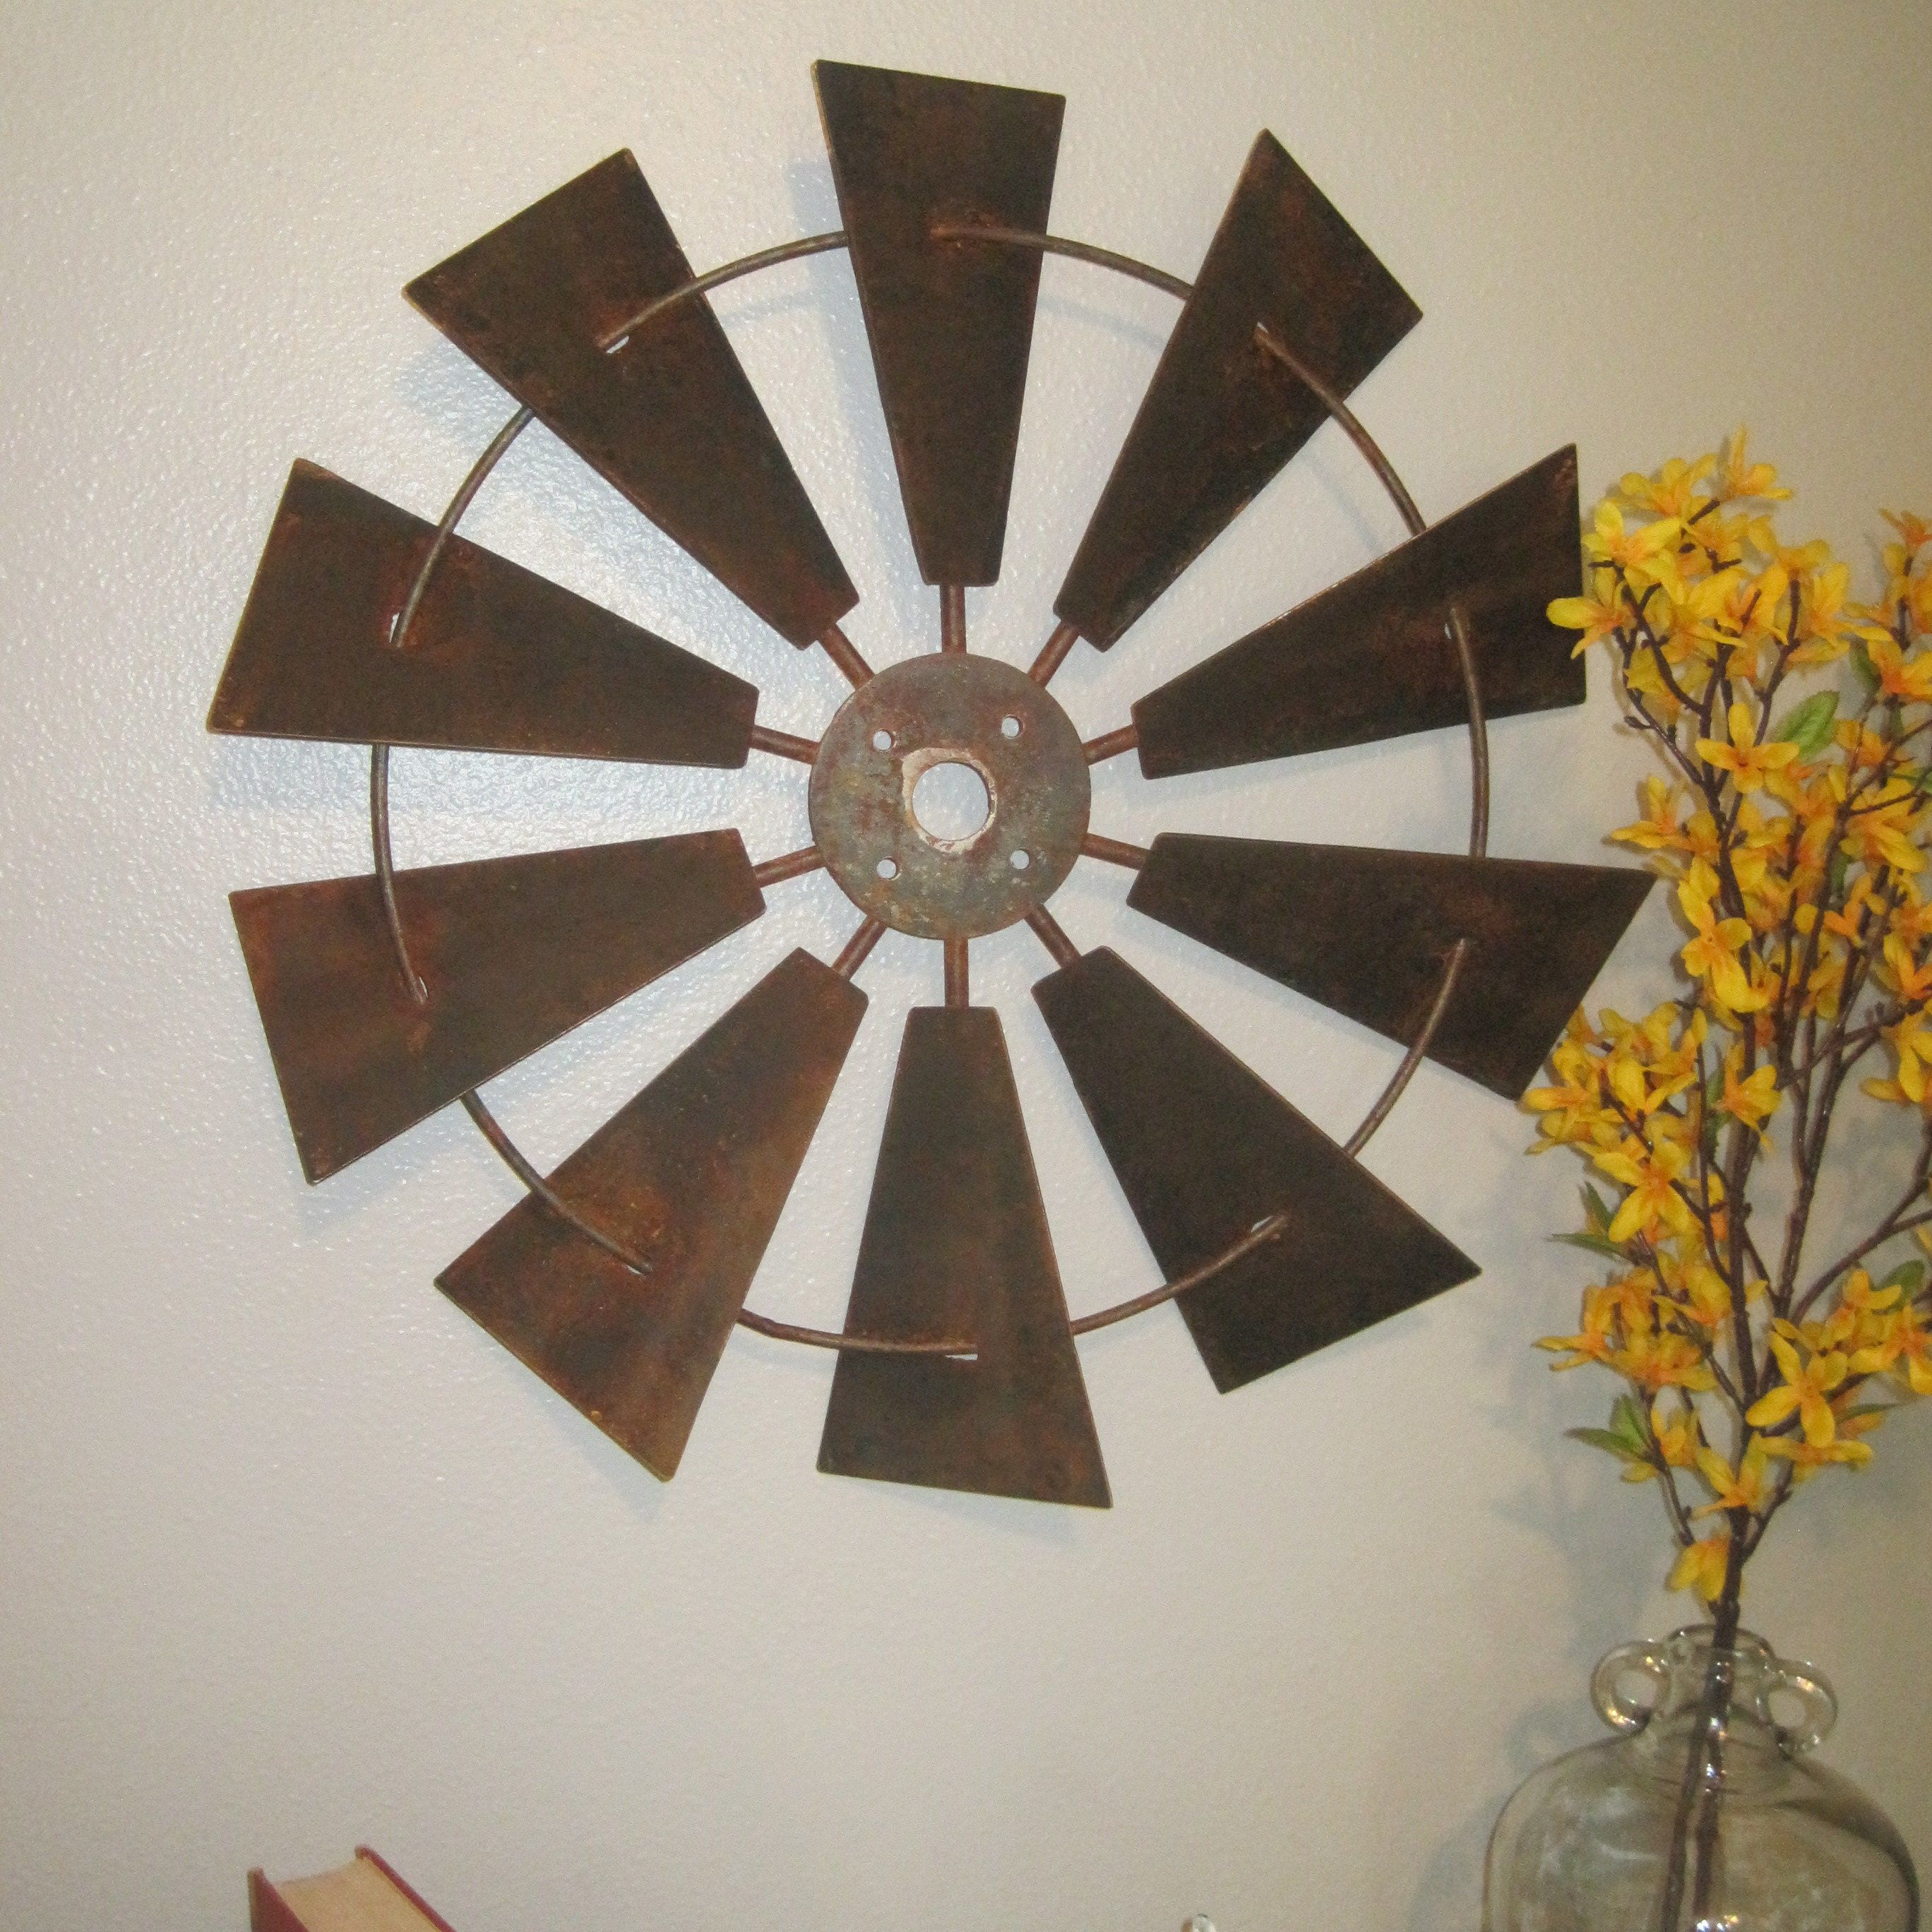 24 rustic windmill head wall decor rustic farmhouse request a custom order and have something made just for you amipublicfo Gallery